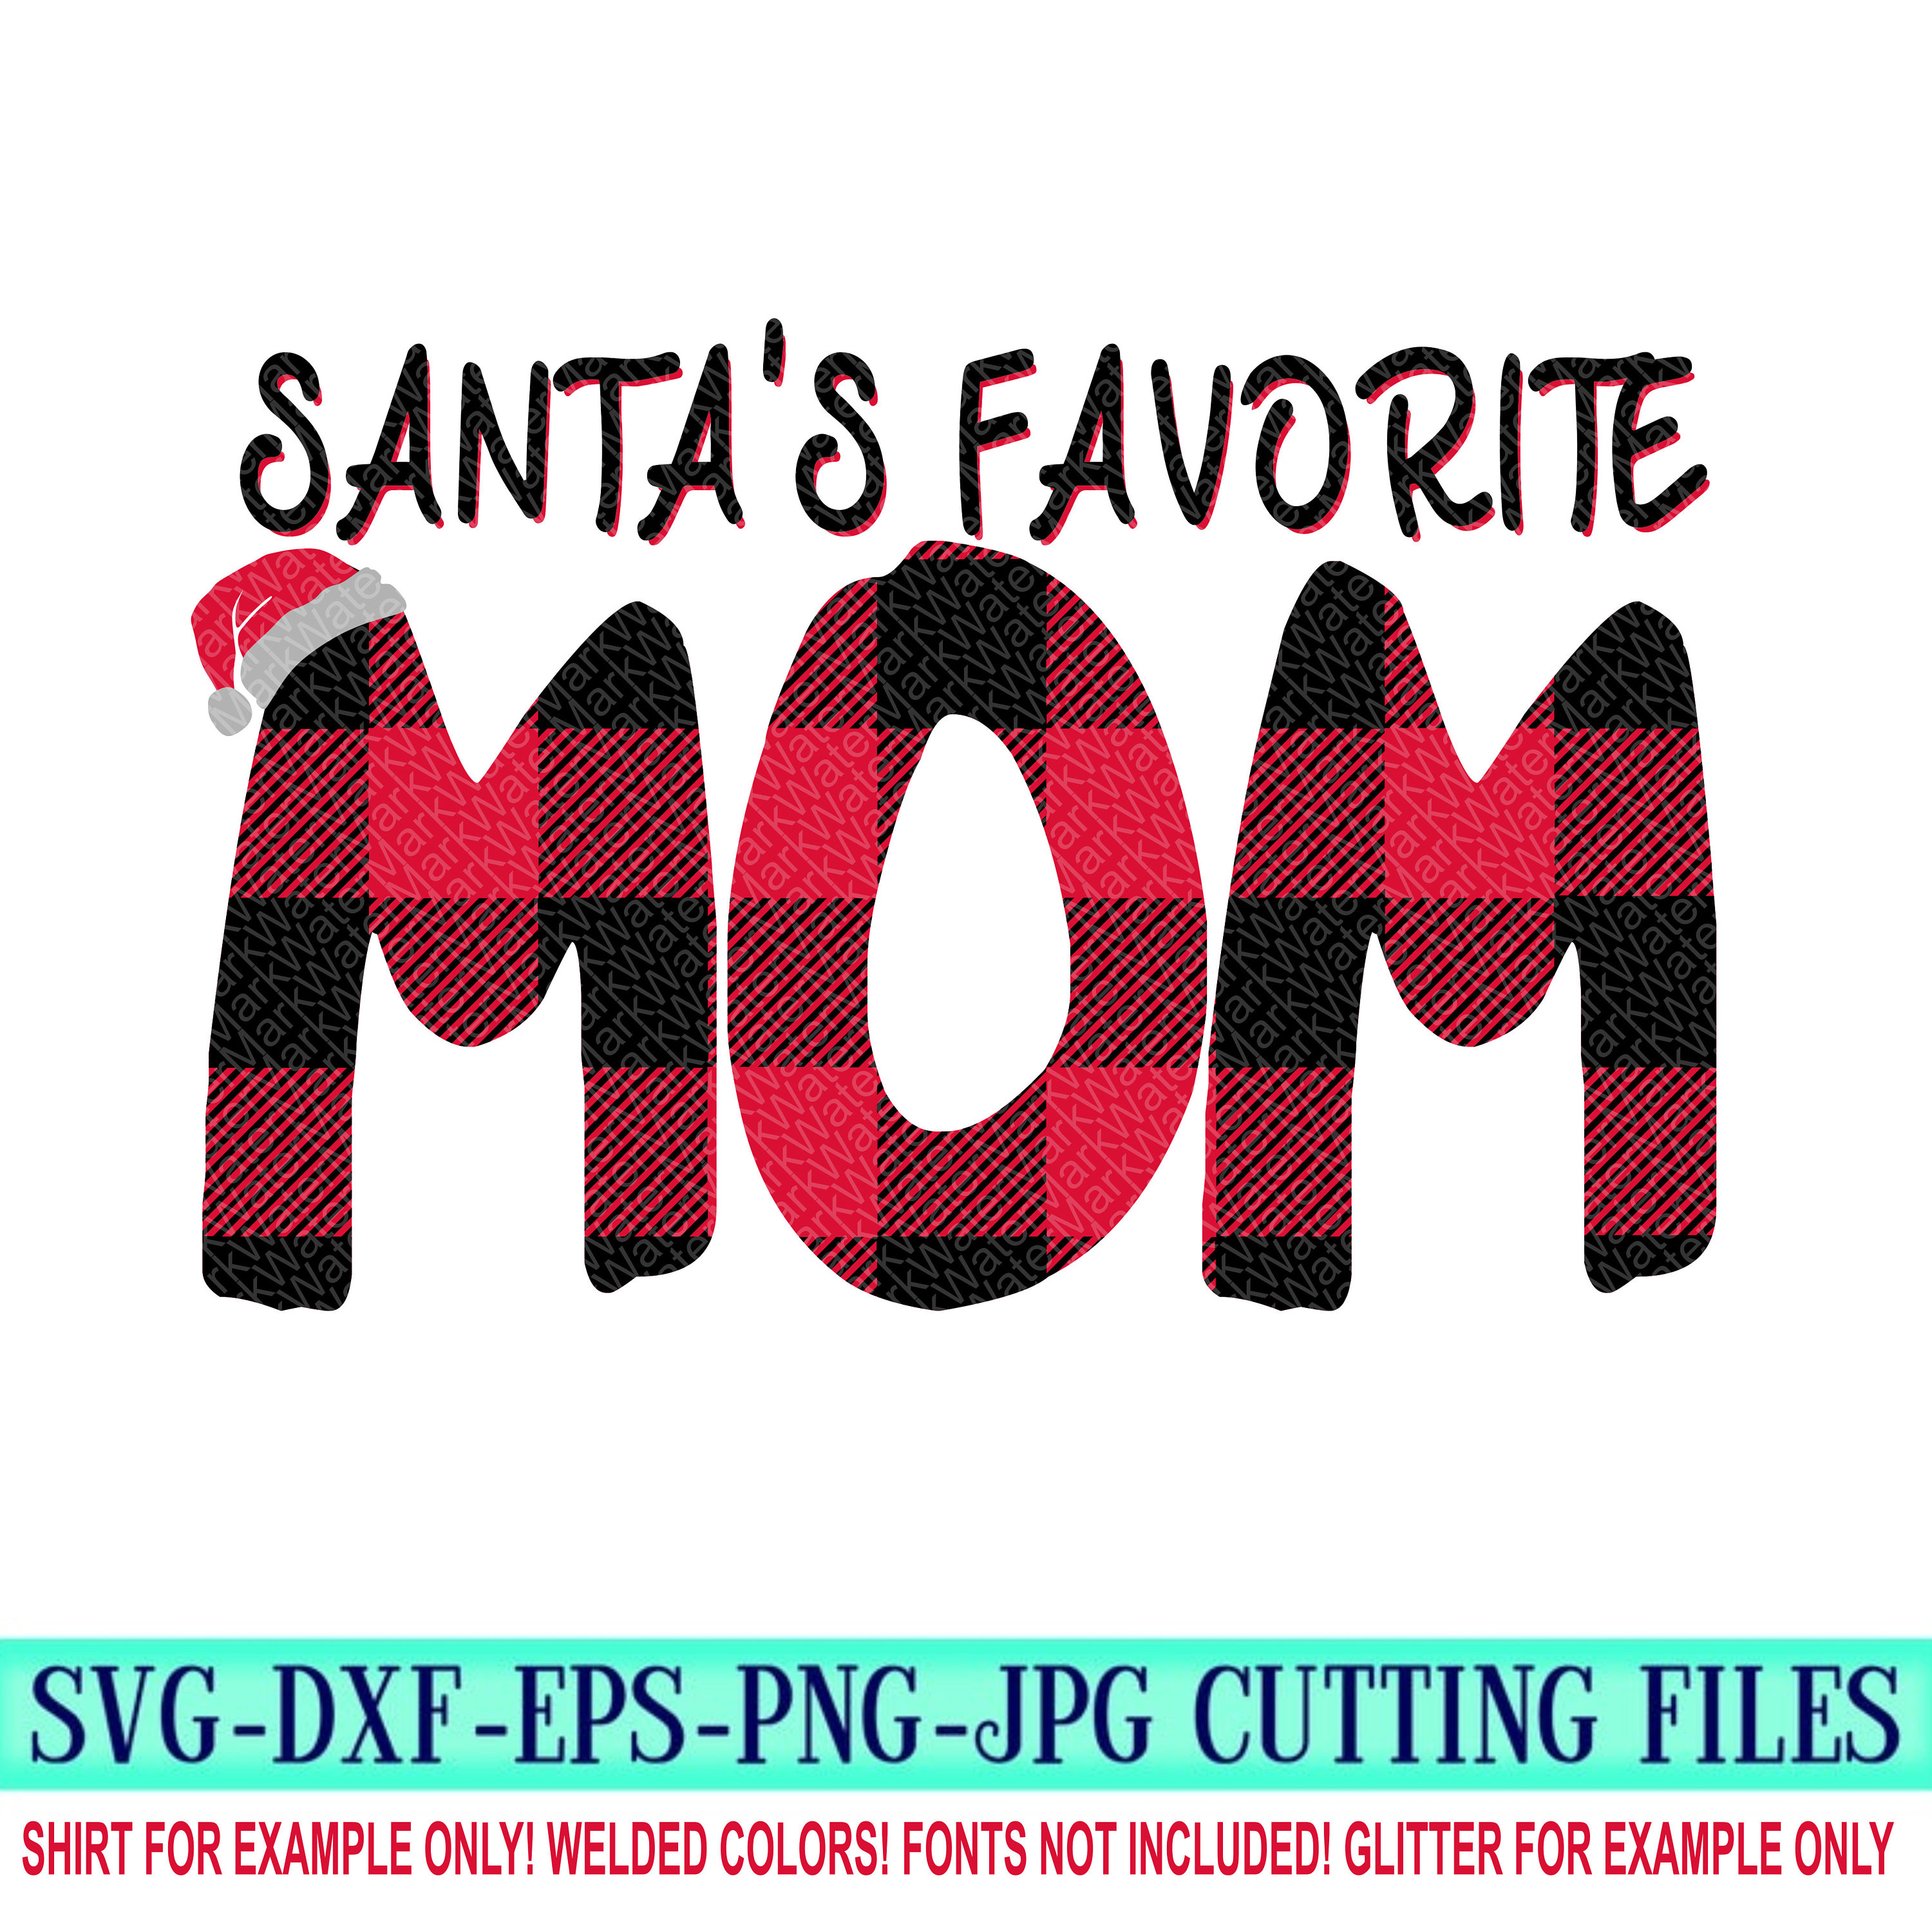 Santa-favorite-mom-svg-buffalo-plaid-svg-favorite-mom-svgsanta-svg-plaid-svg-christmas-cut-file-cricut-svg-svg-for-mobile-mobile-svg-5fa092f5